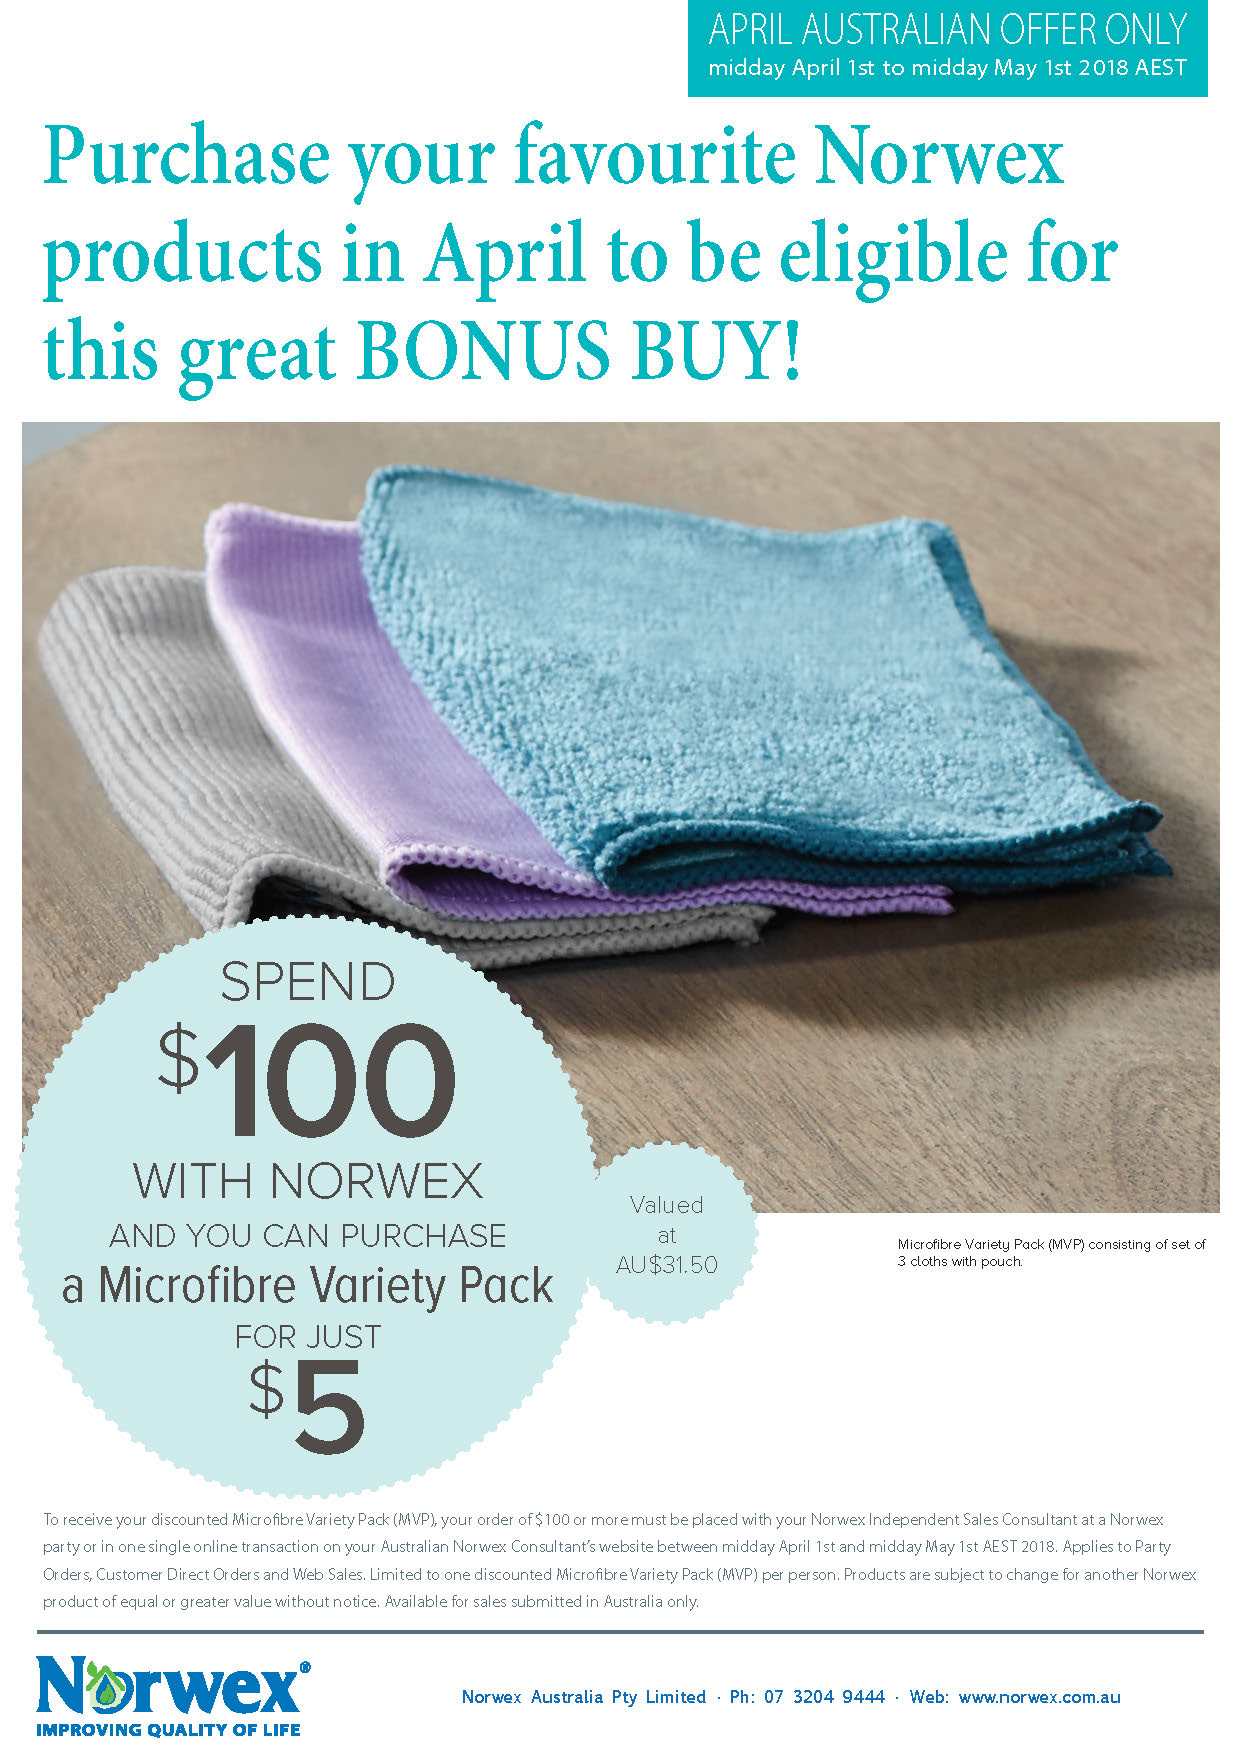 Norwex bonus buy, Australia only, April2018